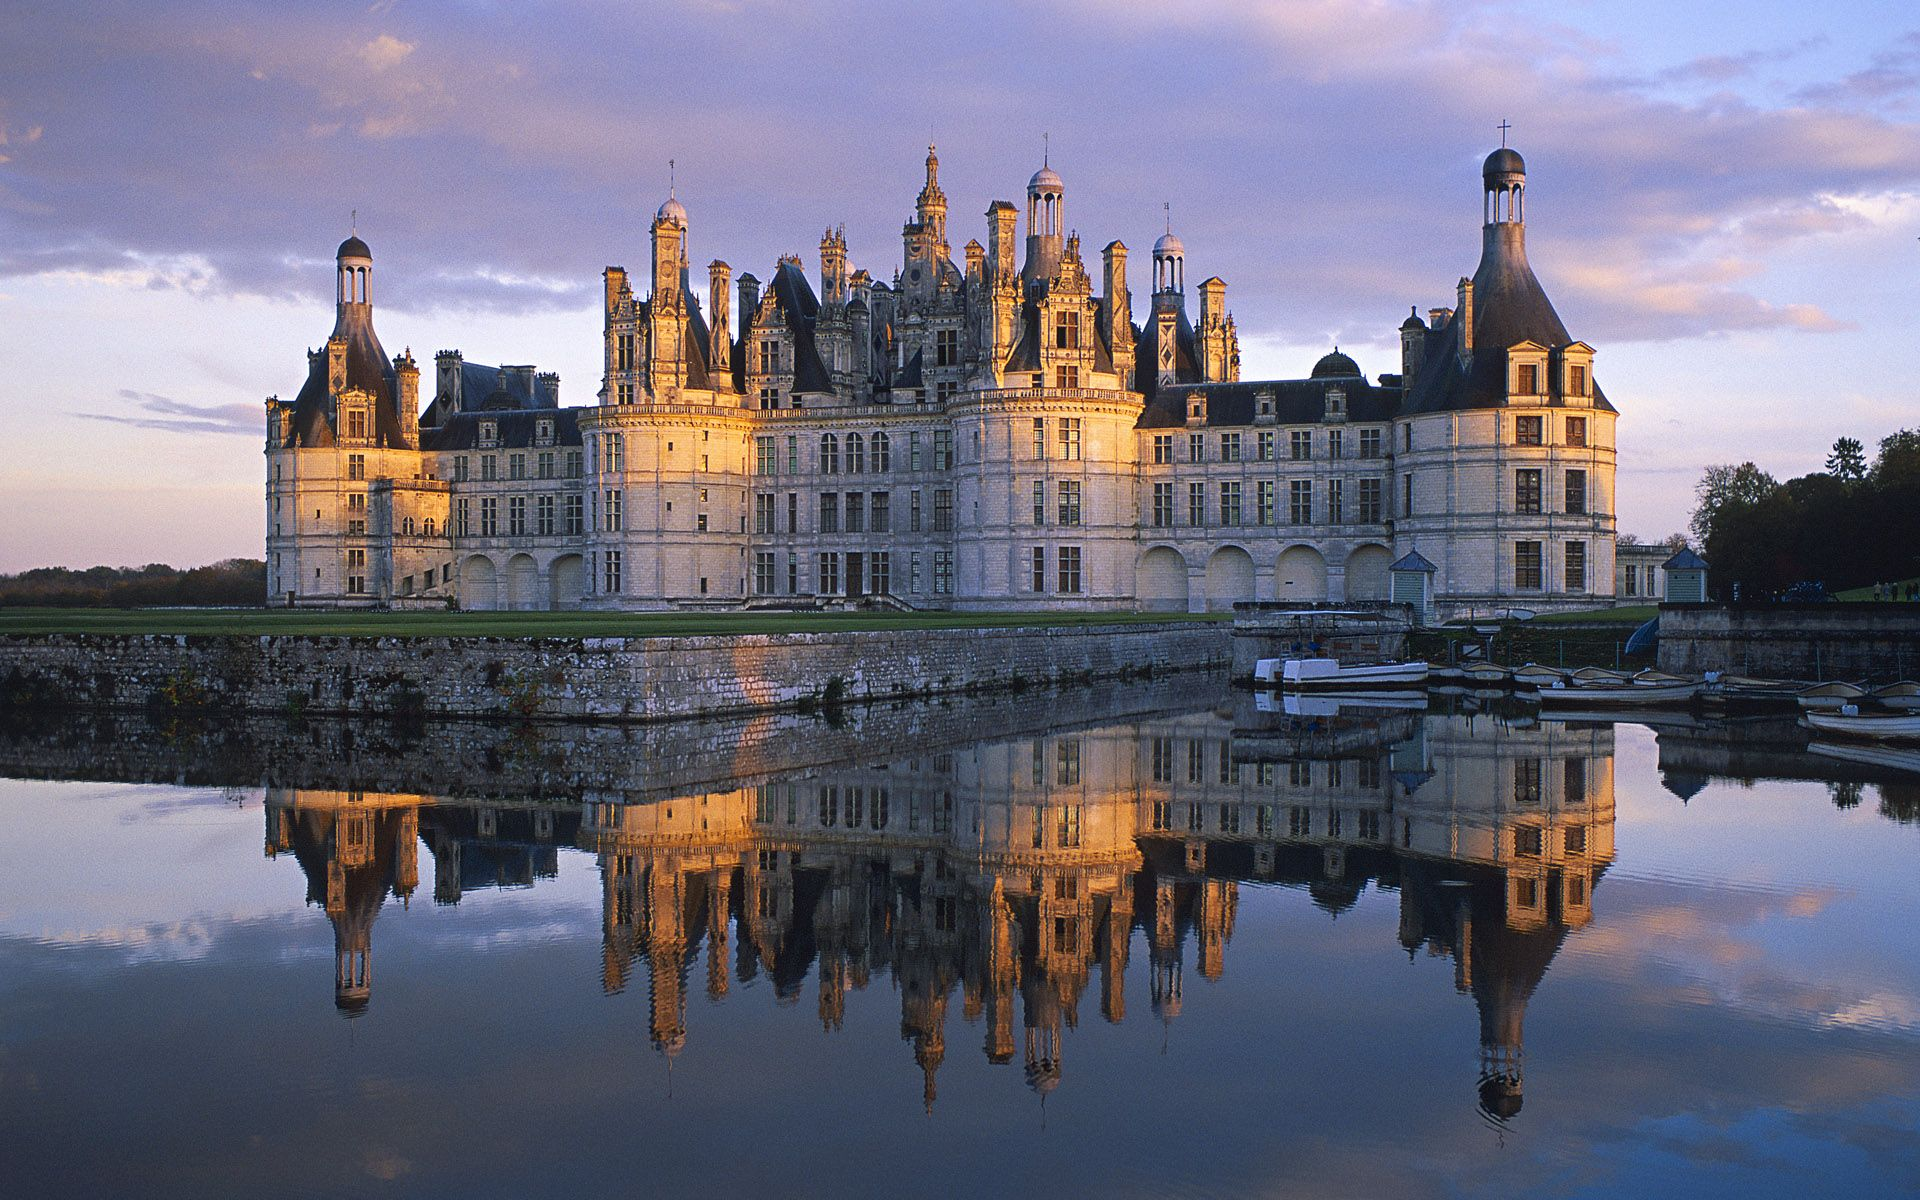 Castles of Europe Wallpapers   Top Castles of Europe 1920x1200